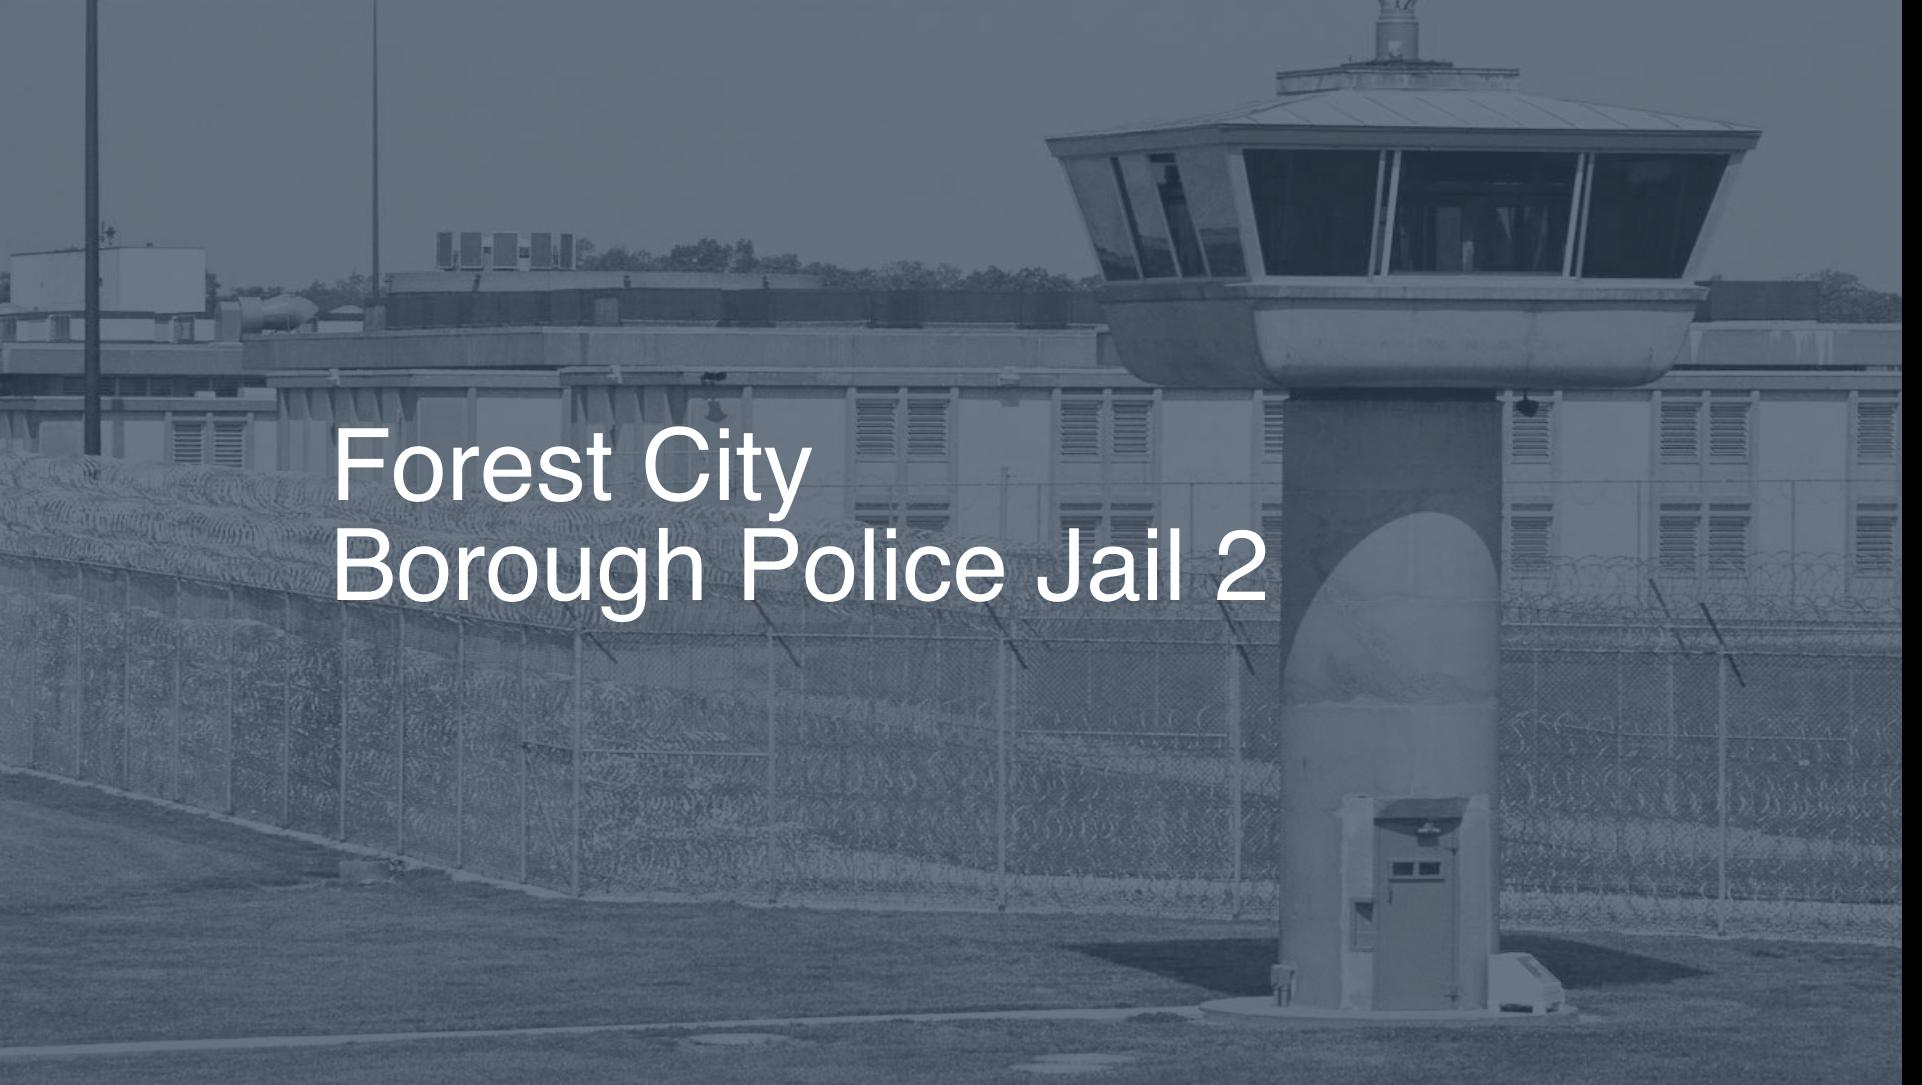 Forest City Borough Police Jail correctional facility picture